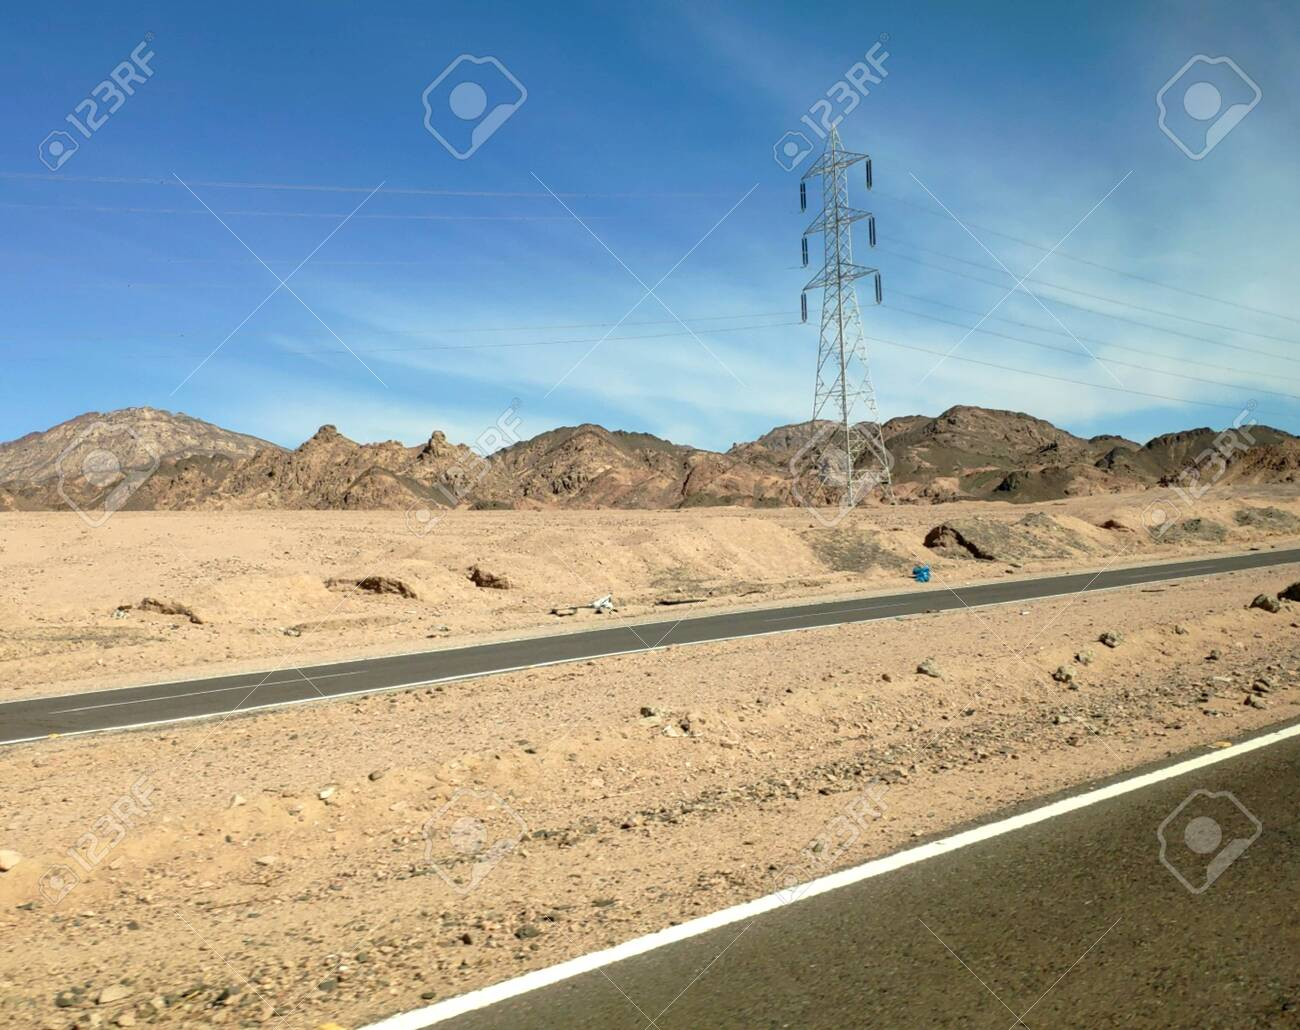 Road In The Sinai Desert Picturesque Background With Mountains 1300x1030